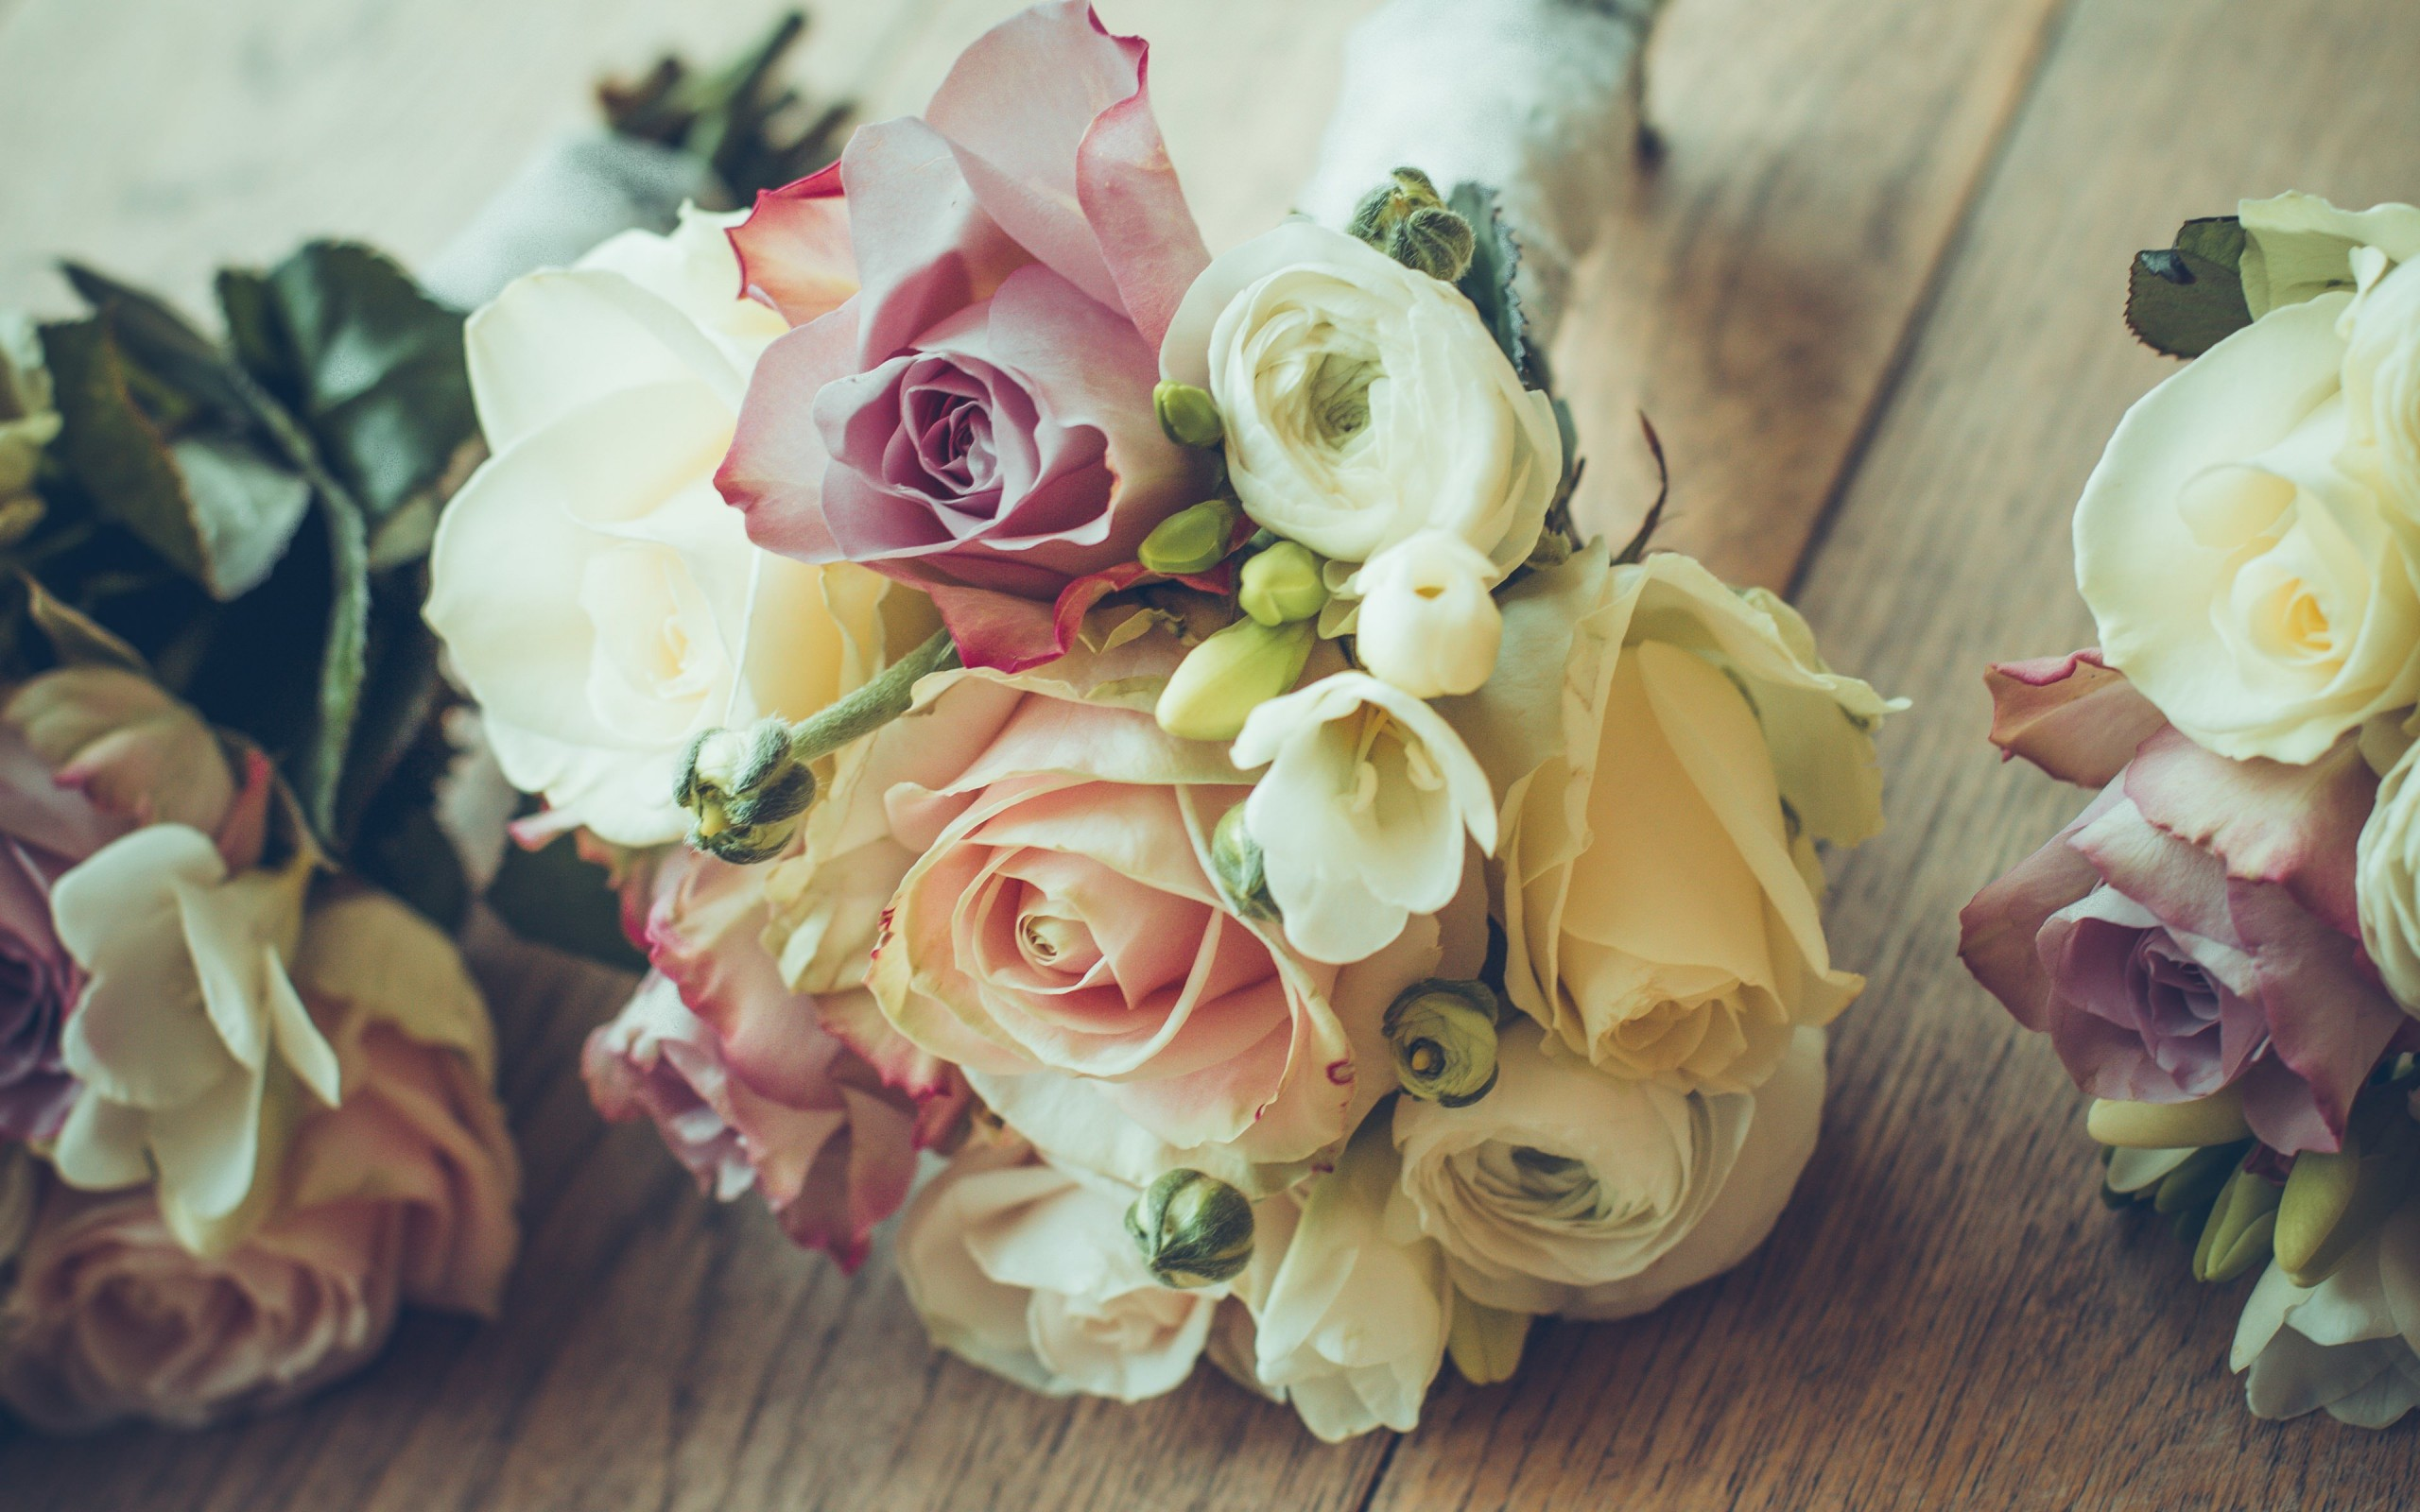 Roses Bouquet Composition Wallpaper for Desktop 2560x1600